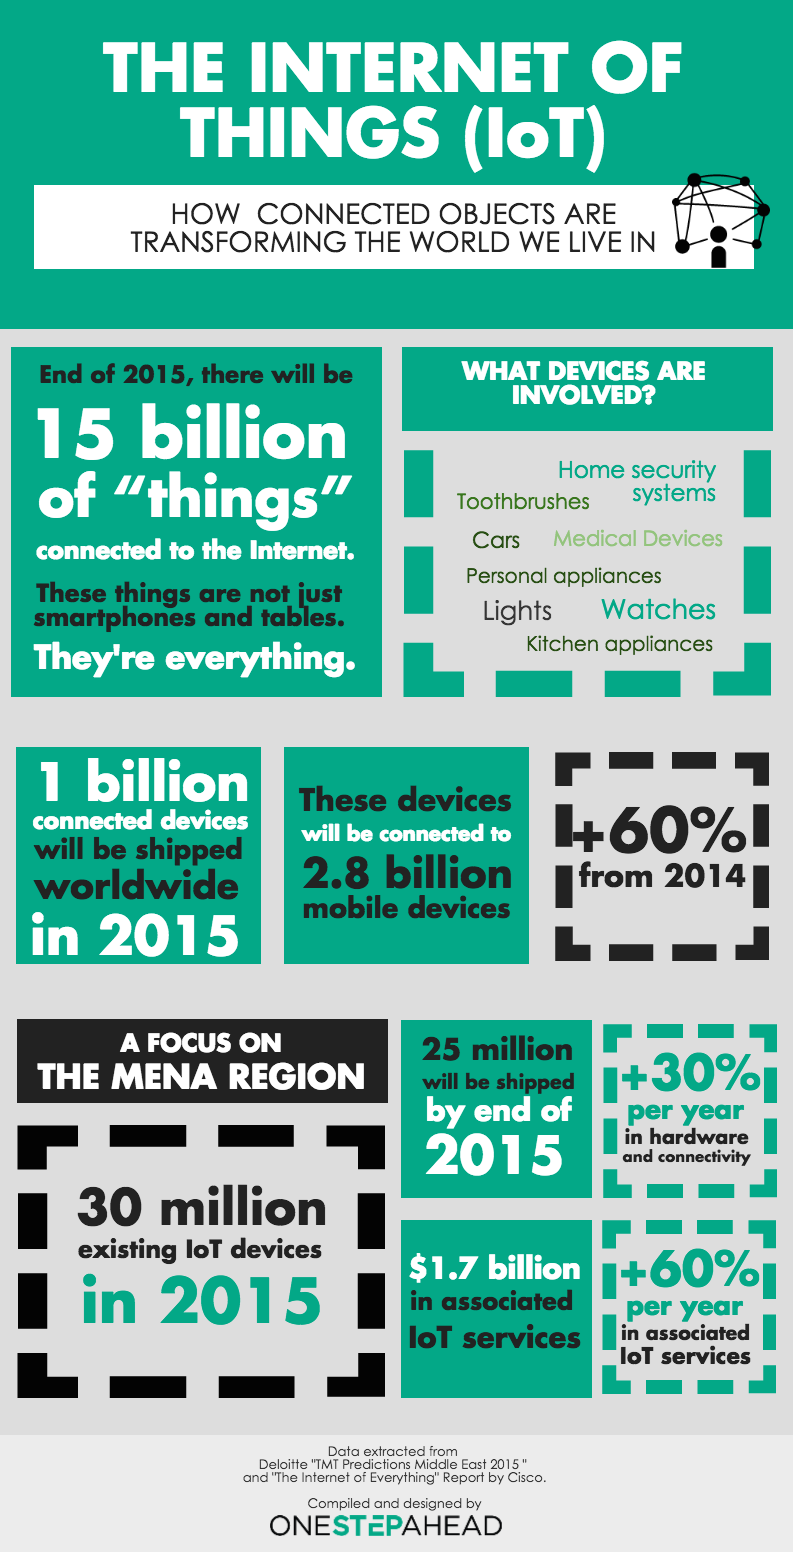 The Internet of Things Middle East